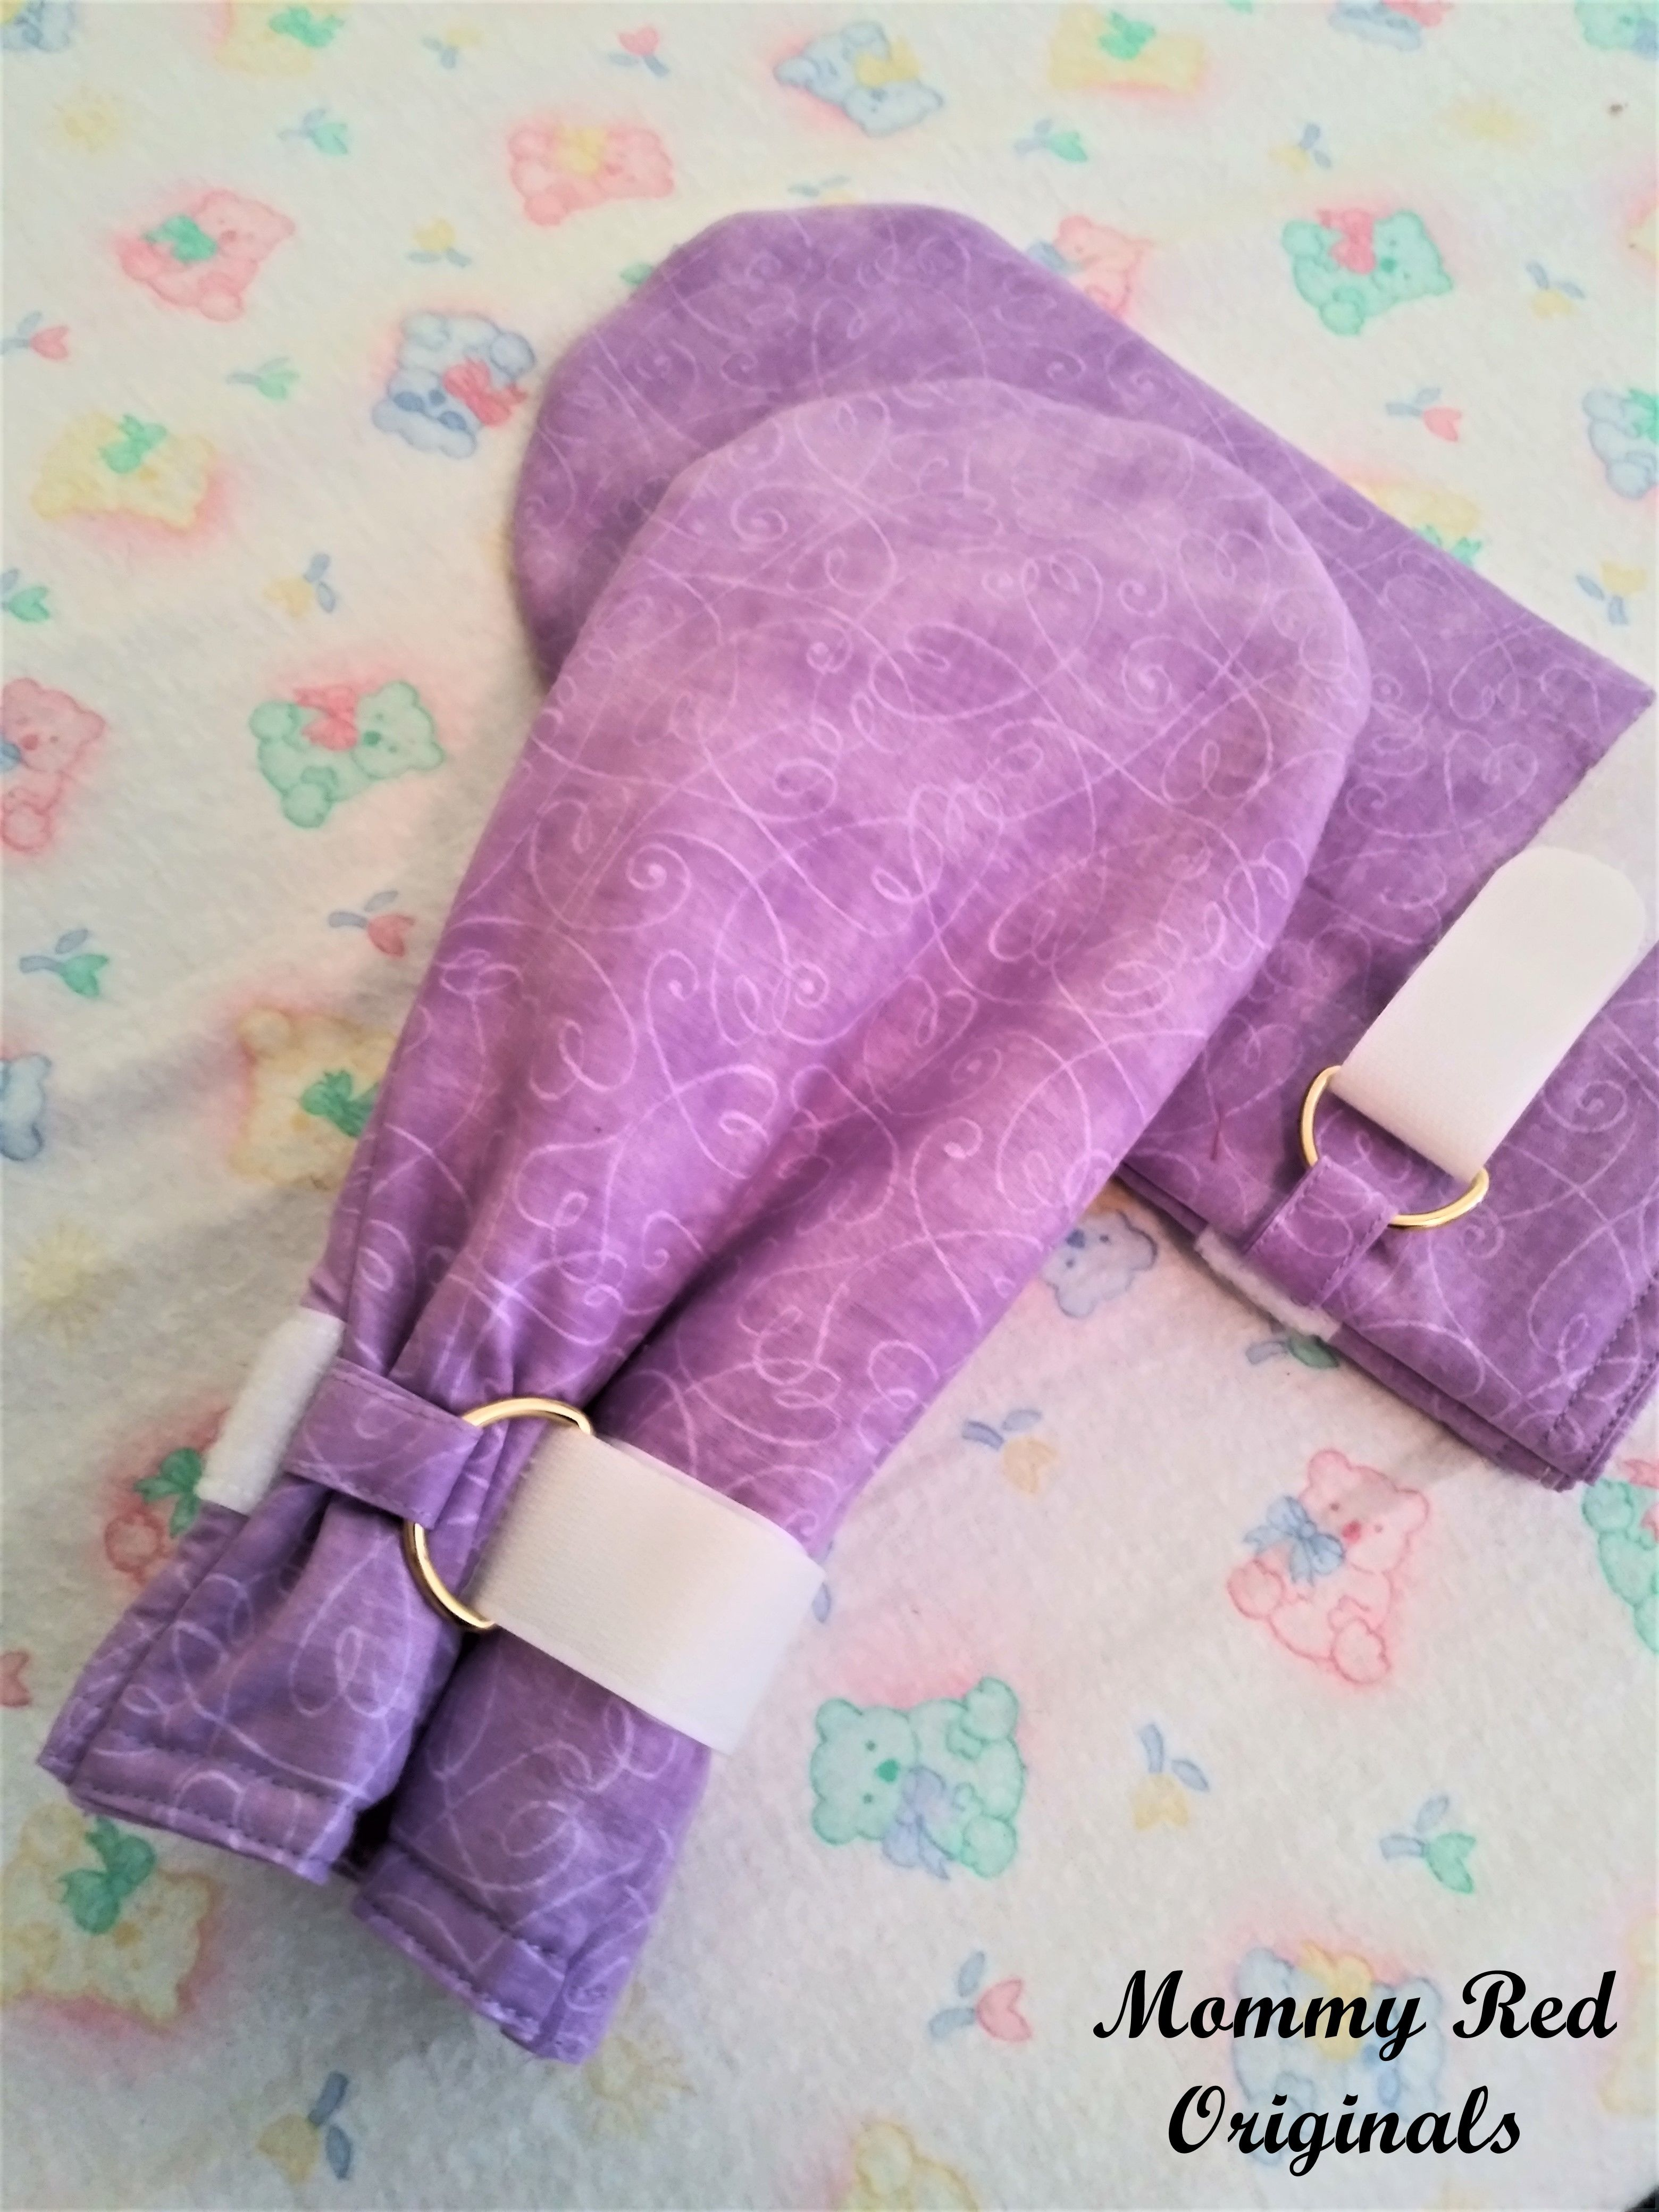 Pin on Abdl Adult Baby items handmade